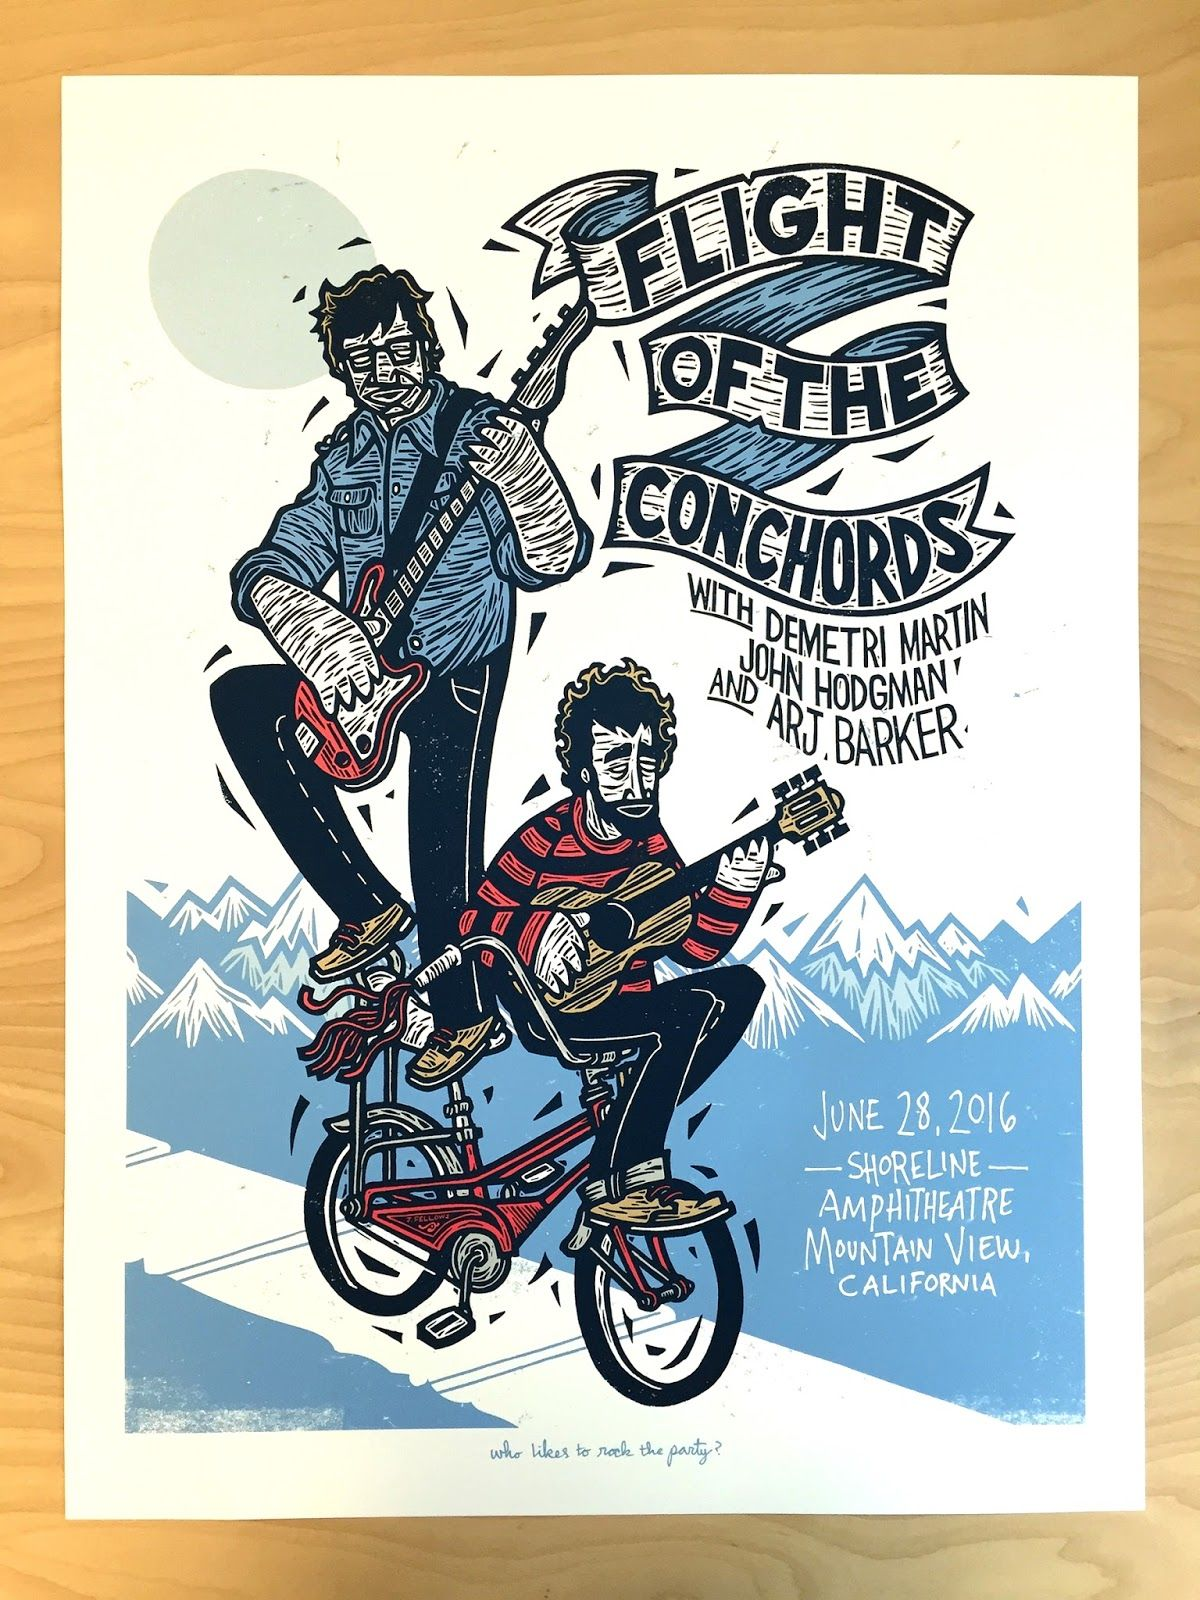 John-Fellows-Flight-of-the-Conchords-Mountain-View-Poster-2016.JPG 1,200×1,600 pixels